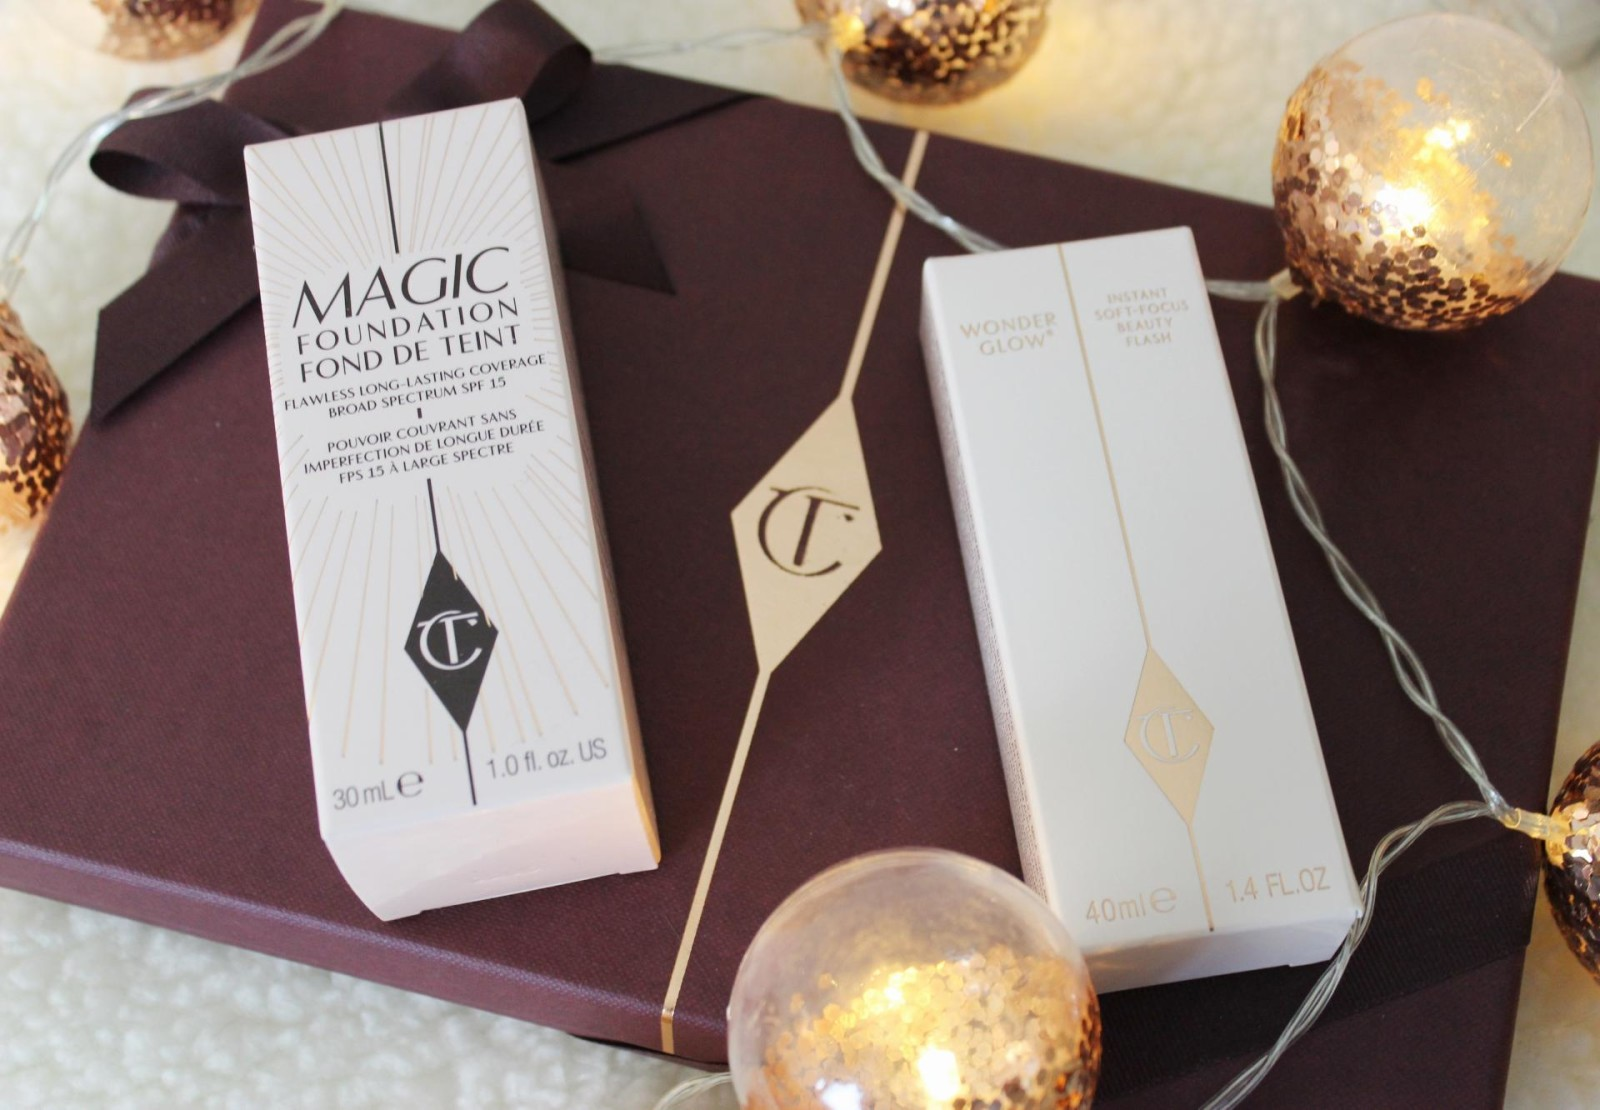 Charlotte Tilbury Wonder Glow & Magic Foundation